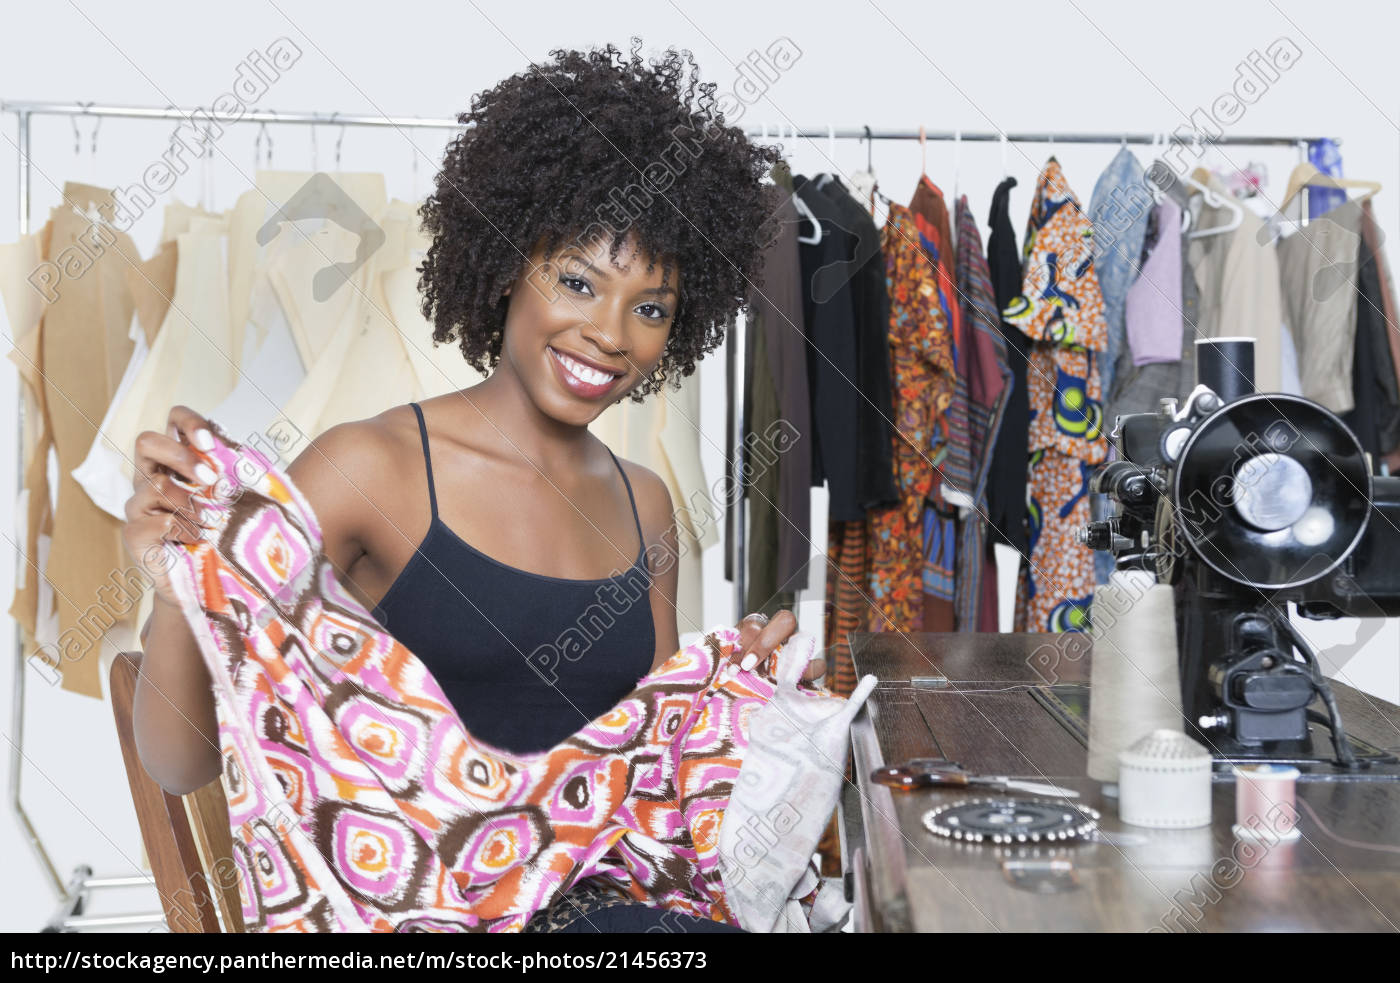 Portrait Of An African American Female Fashion Stock Photo 21456373 Panthermedia Stock Agency